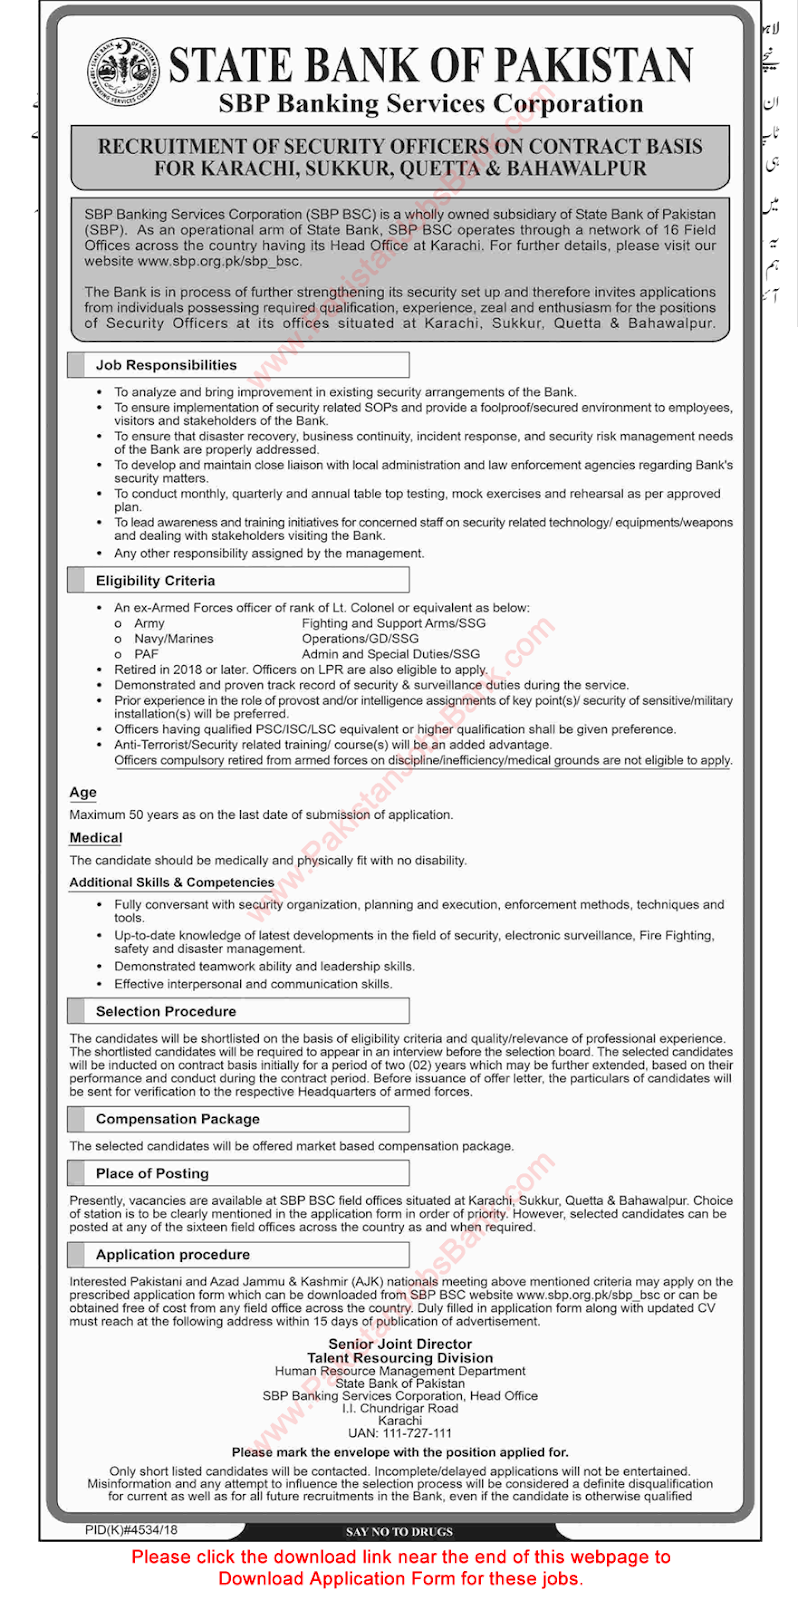 Security Officer Jobs in State Bank of Pakistan June 2019